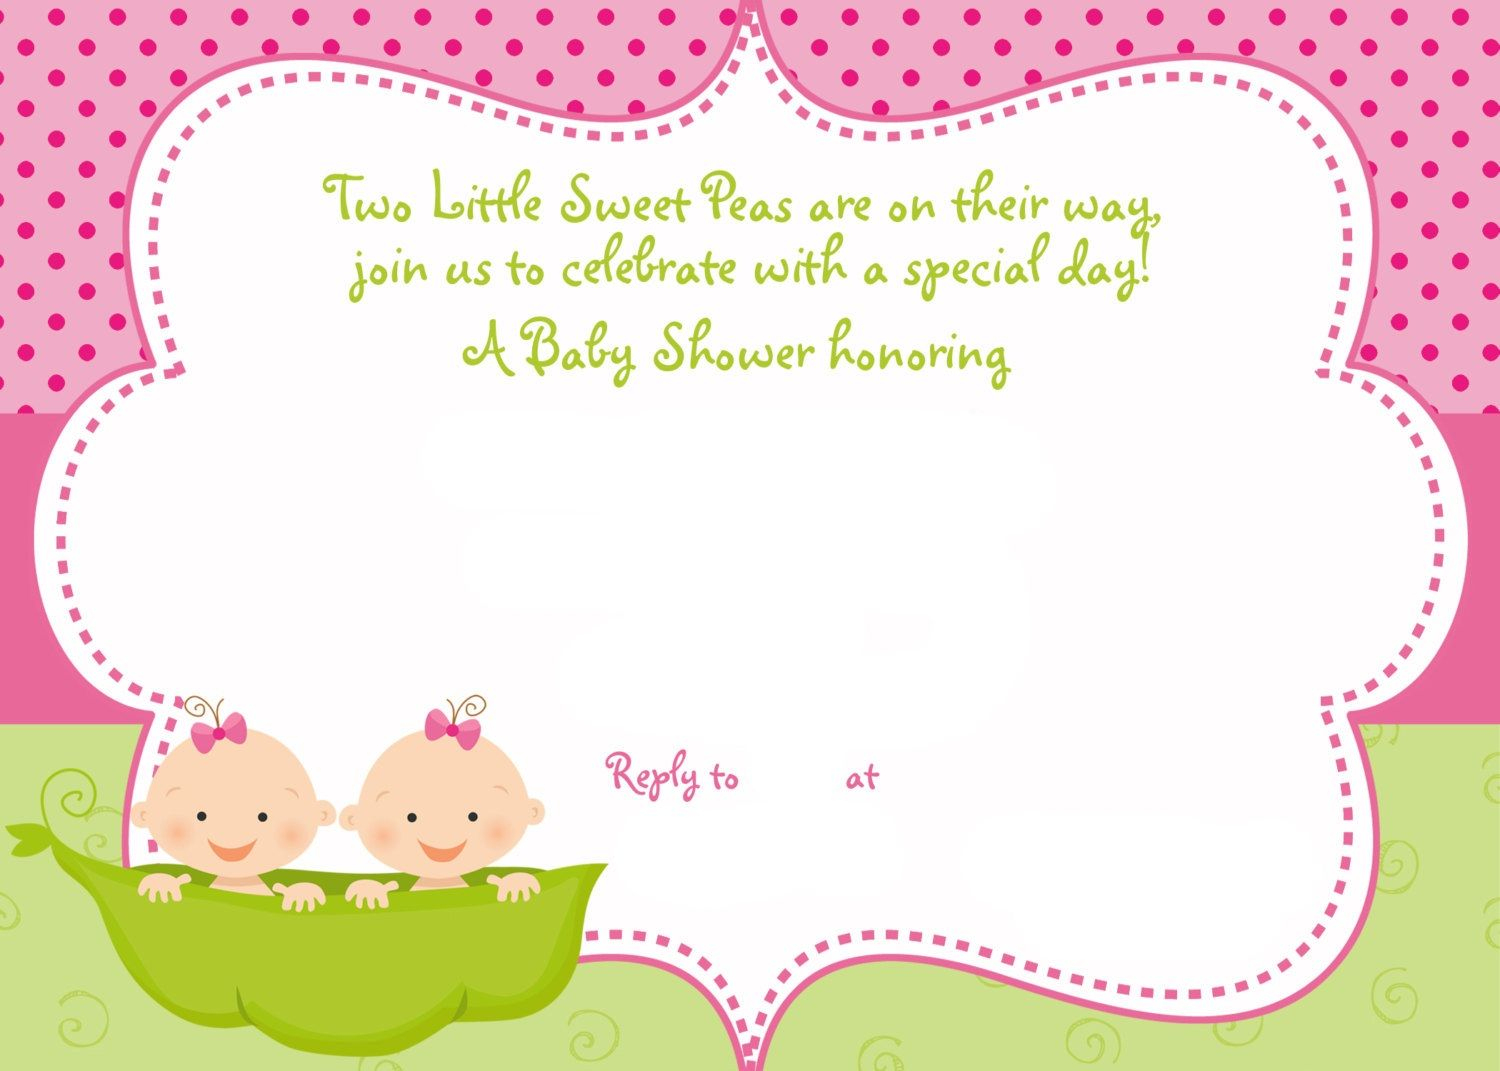 Cool Free Printable Twins Baby Shower Invitation Ideas | Free Baby - Free Printable Twin Baby Shower Invitations